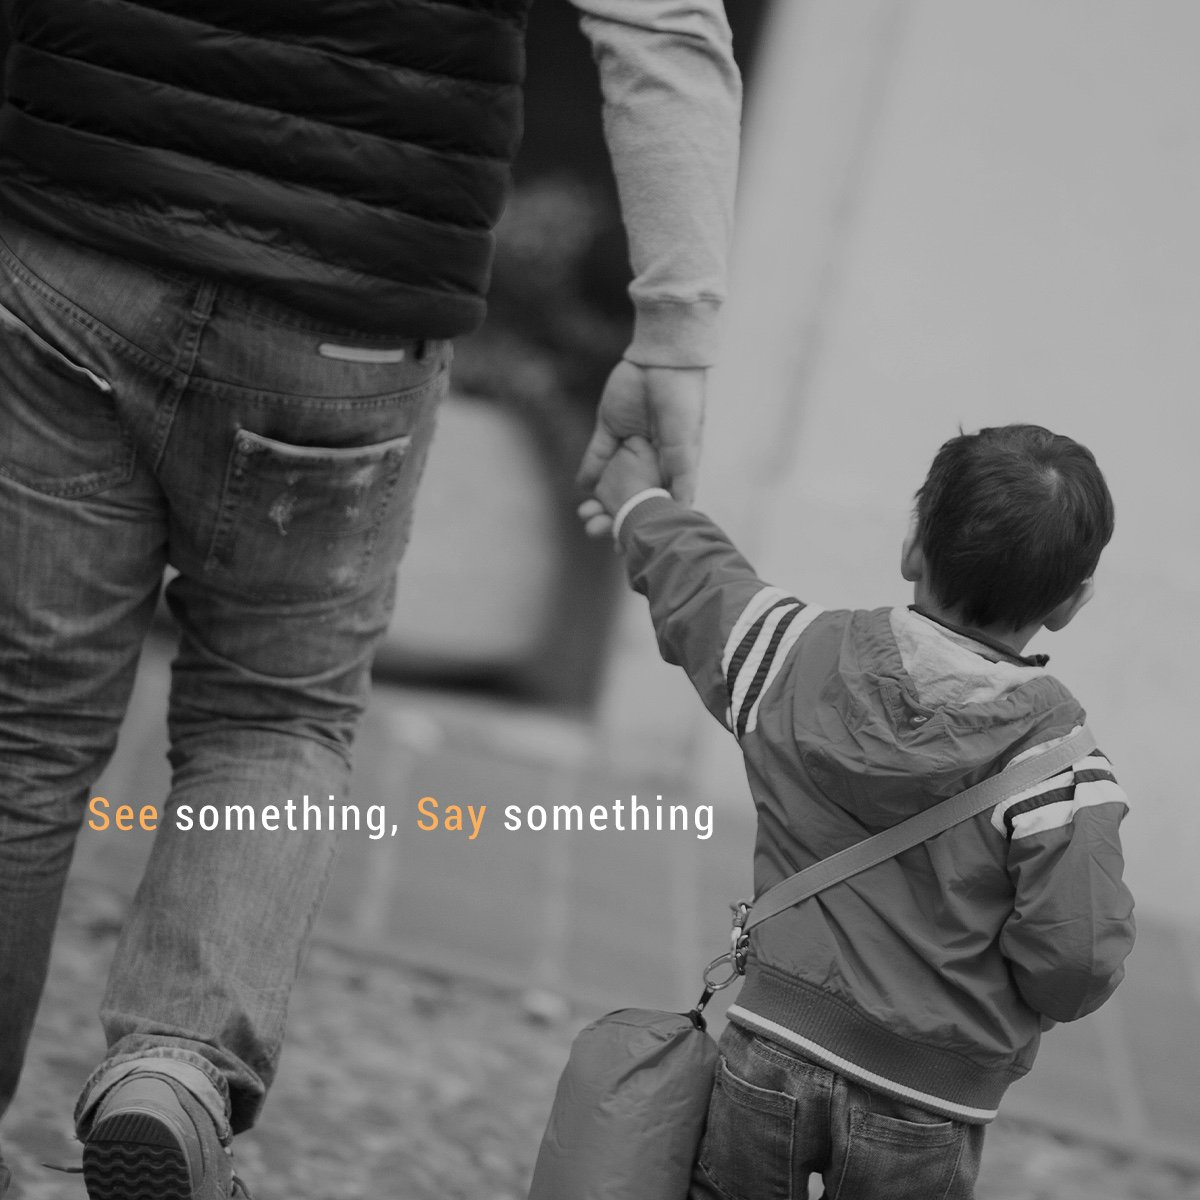 As teachers and parents, it's your job to make sure every child is safe. Create an atmosphere where children feel safe. If you see something off, say something. #childabuse #takeaction #saysomething